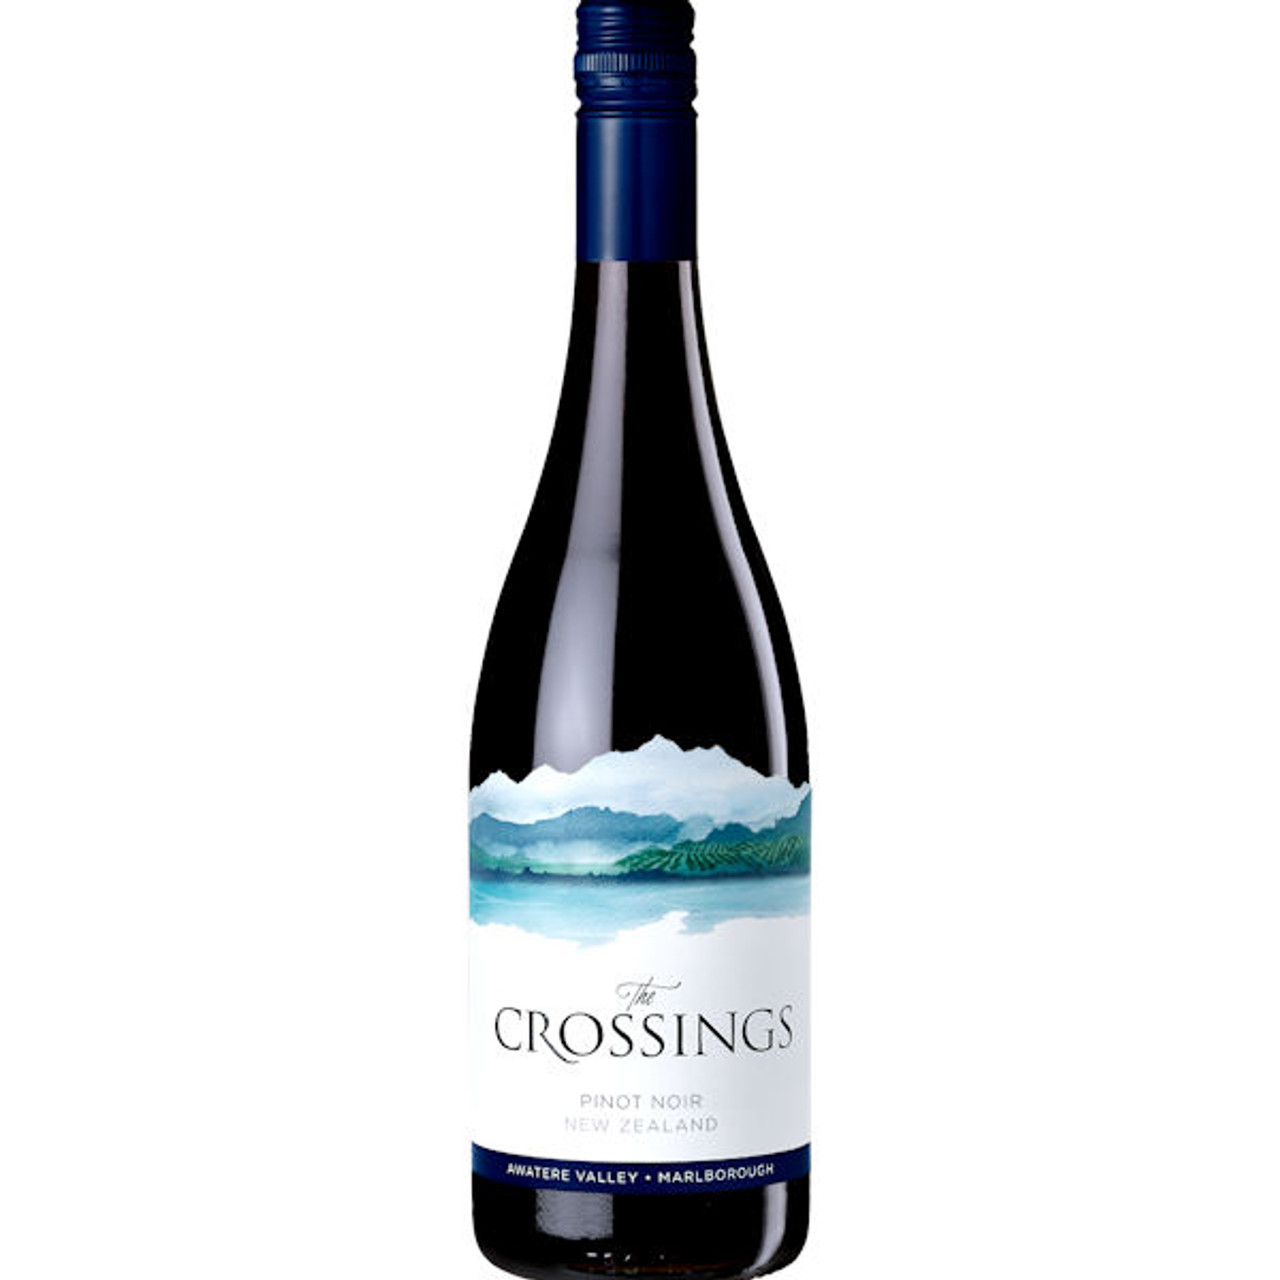 The Crossings Marlborough Pinot Noir